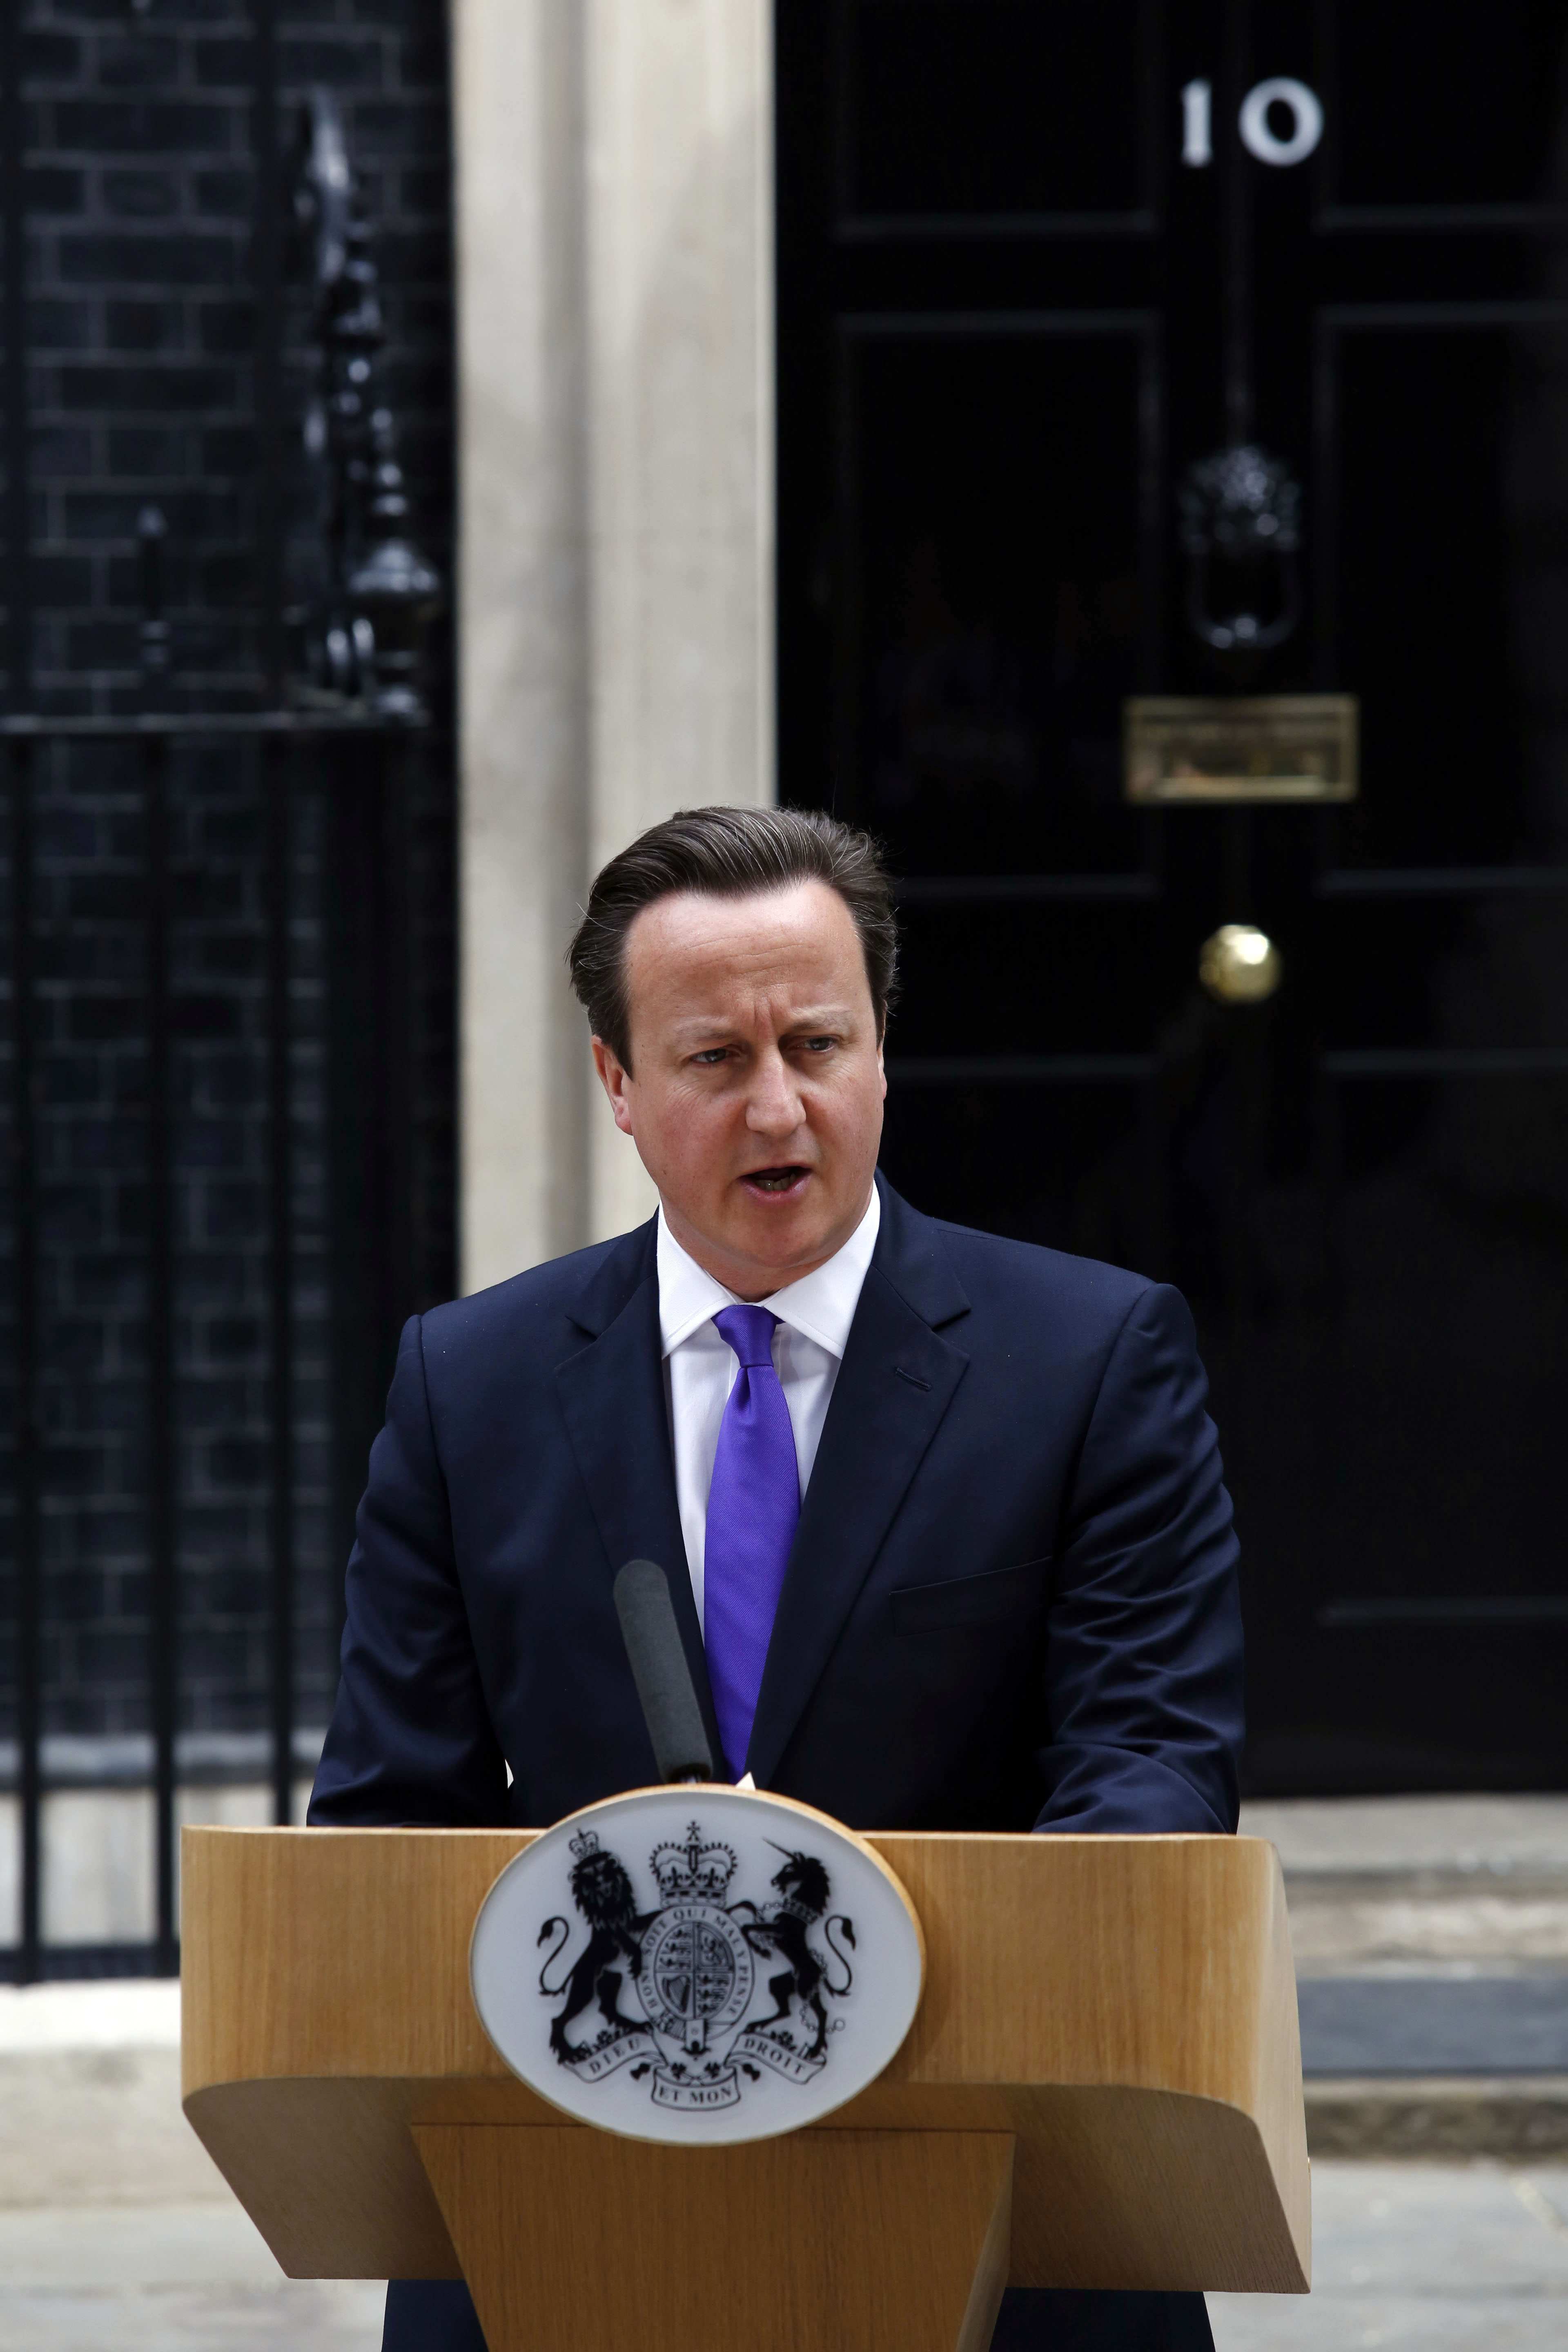 Uk muslims press for peace at 10 downing street - Britain S Prime Minister David Cameron Makes A Statement Outside N 10 Downing Street Following A